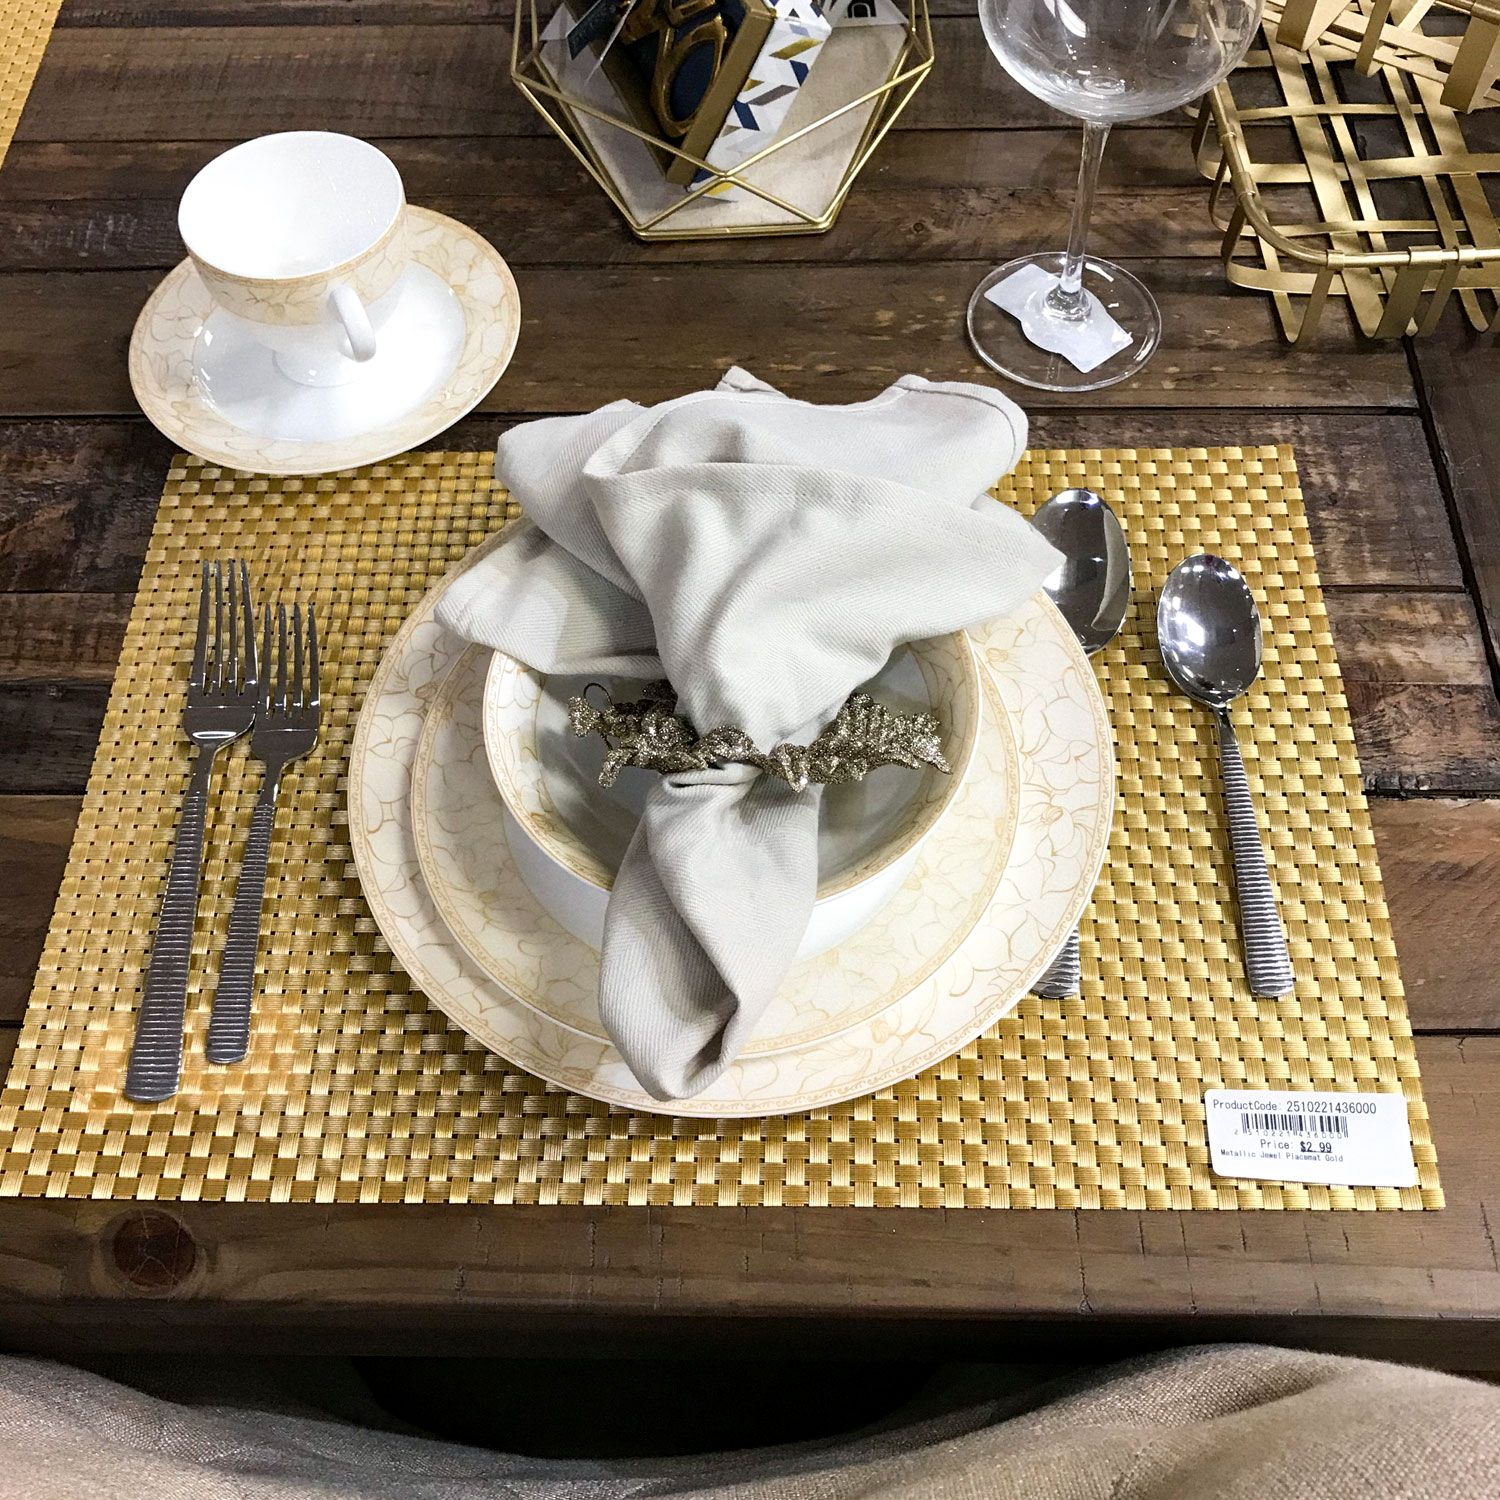 Dinner Setting With Placemat Dinner Plate Salad Plate Bowl Napkin And Silverware Plates And Bowls Plates Table Centerpieces